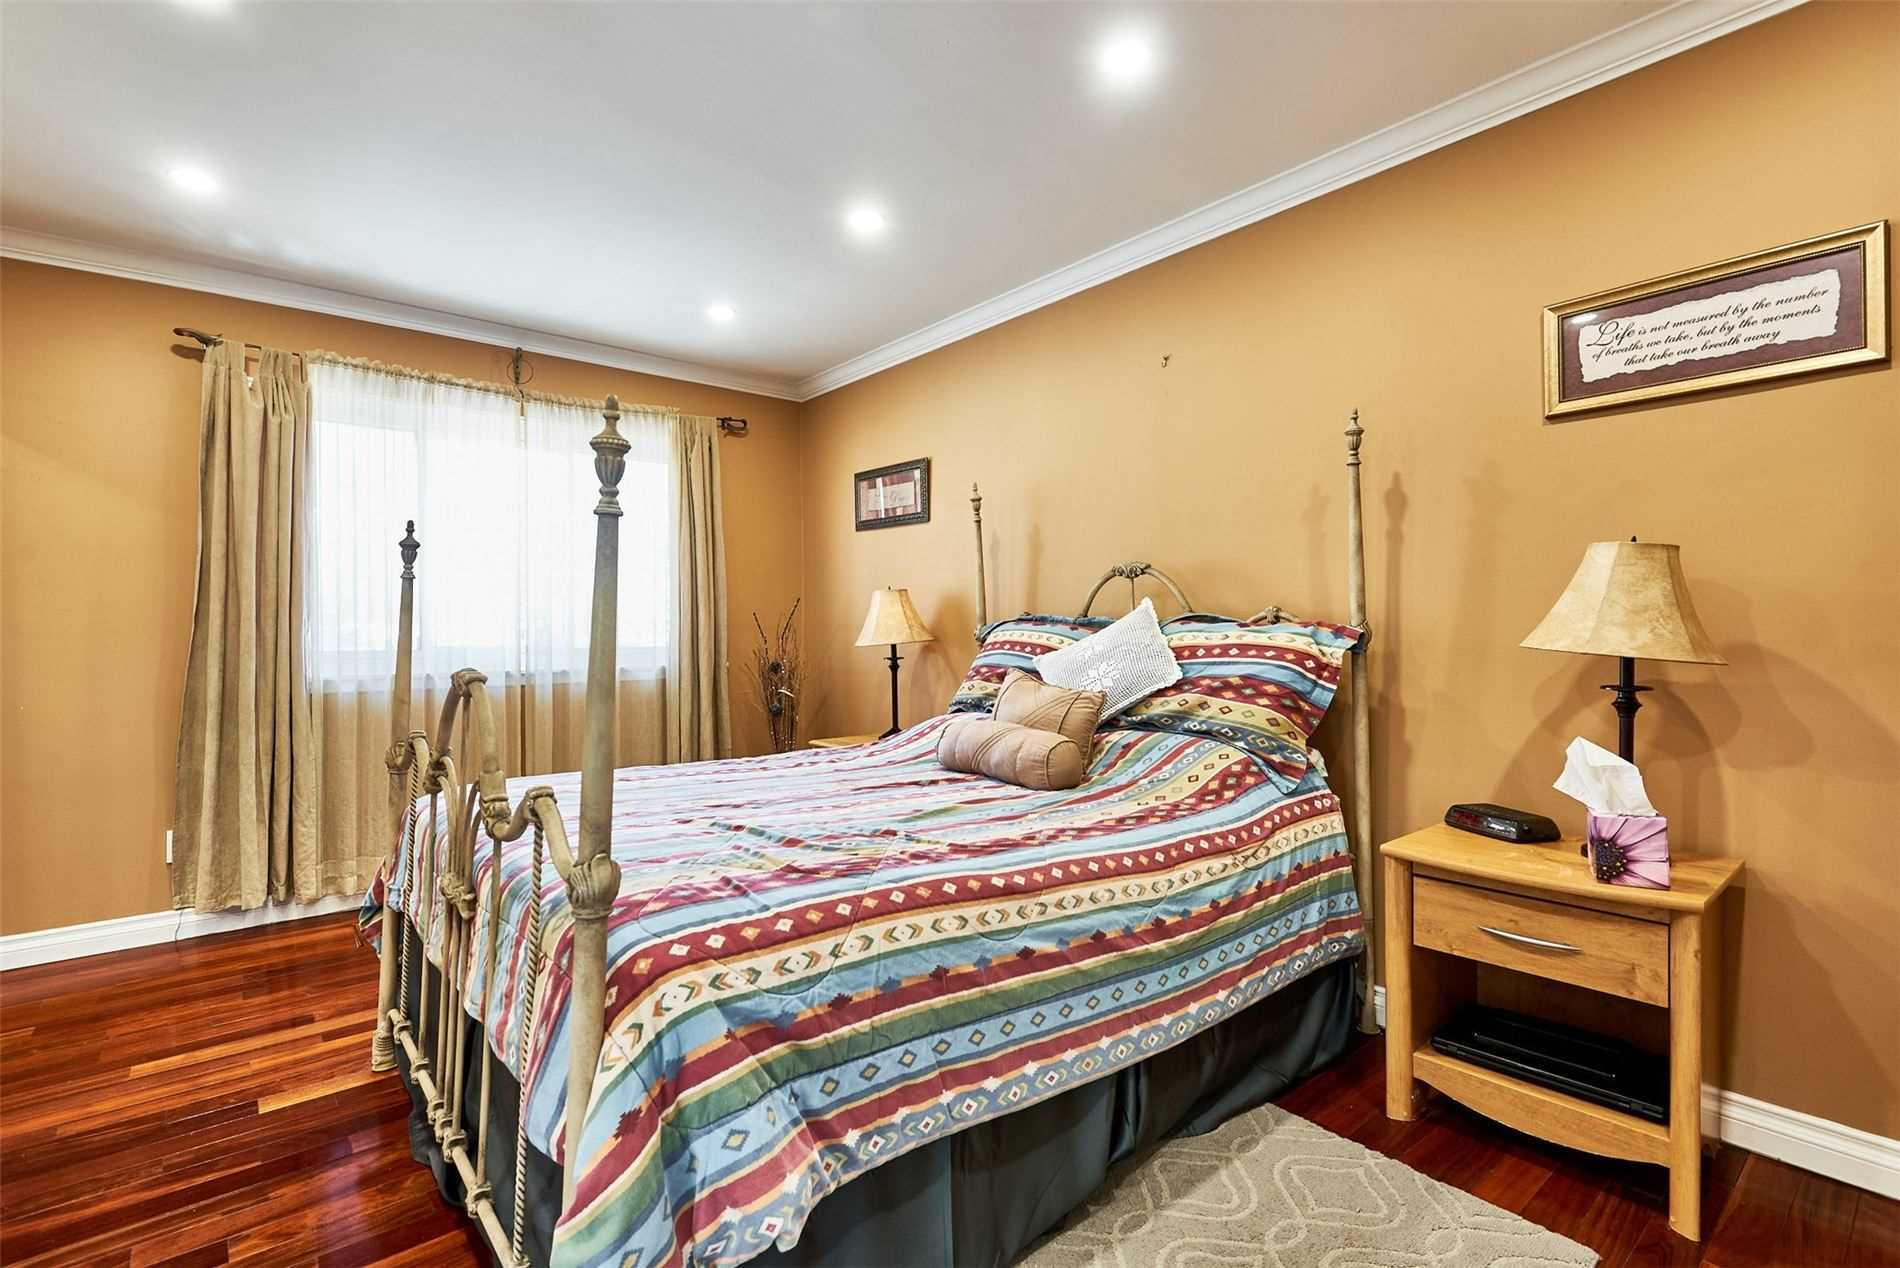 Image 13 of 33 showing inside of 3 Bedroom Condo Townhouse 2-Storey for Sale at 33 Clover Ridge Dr W Unit# 9, Ajax L1S3M5